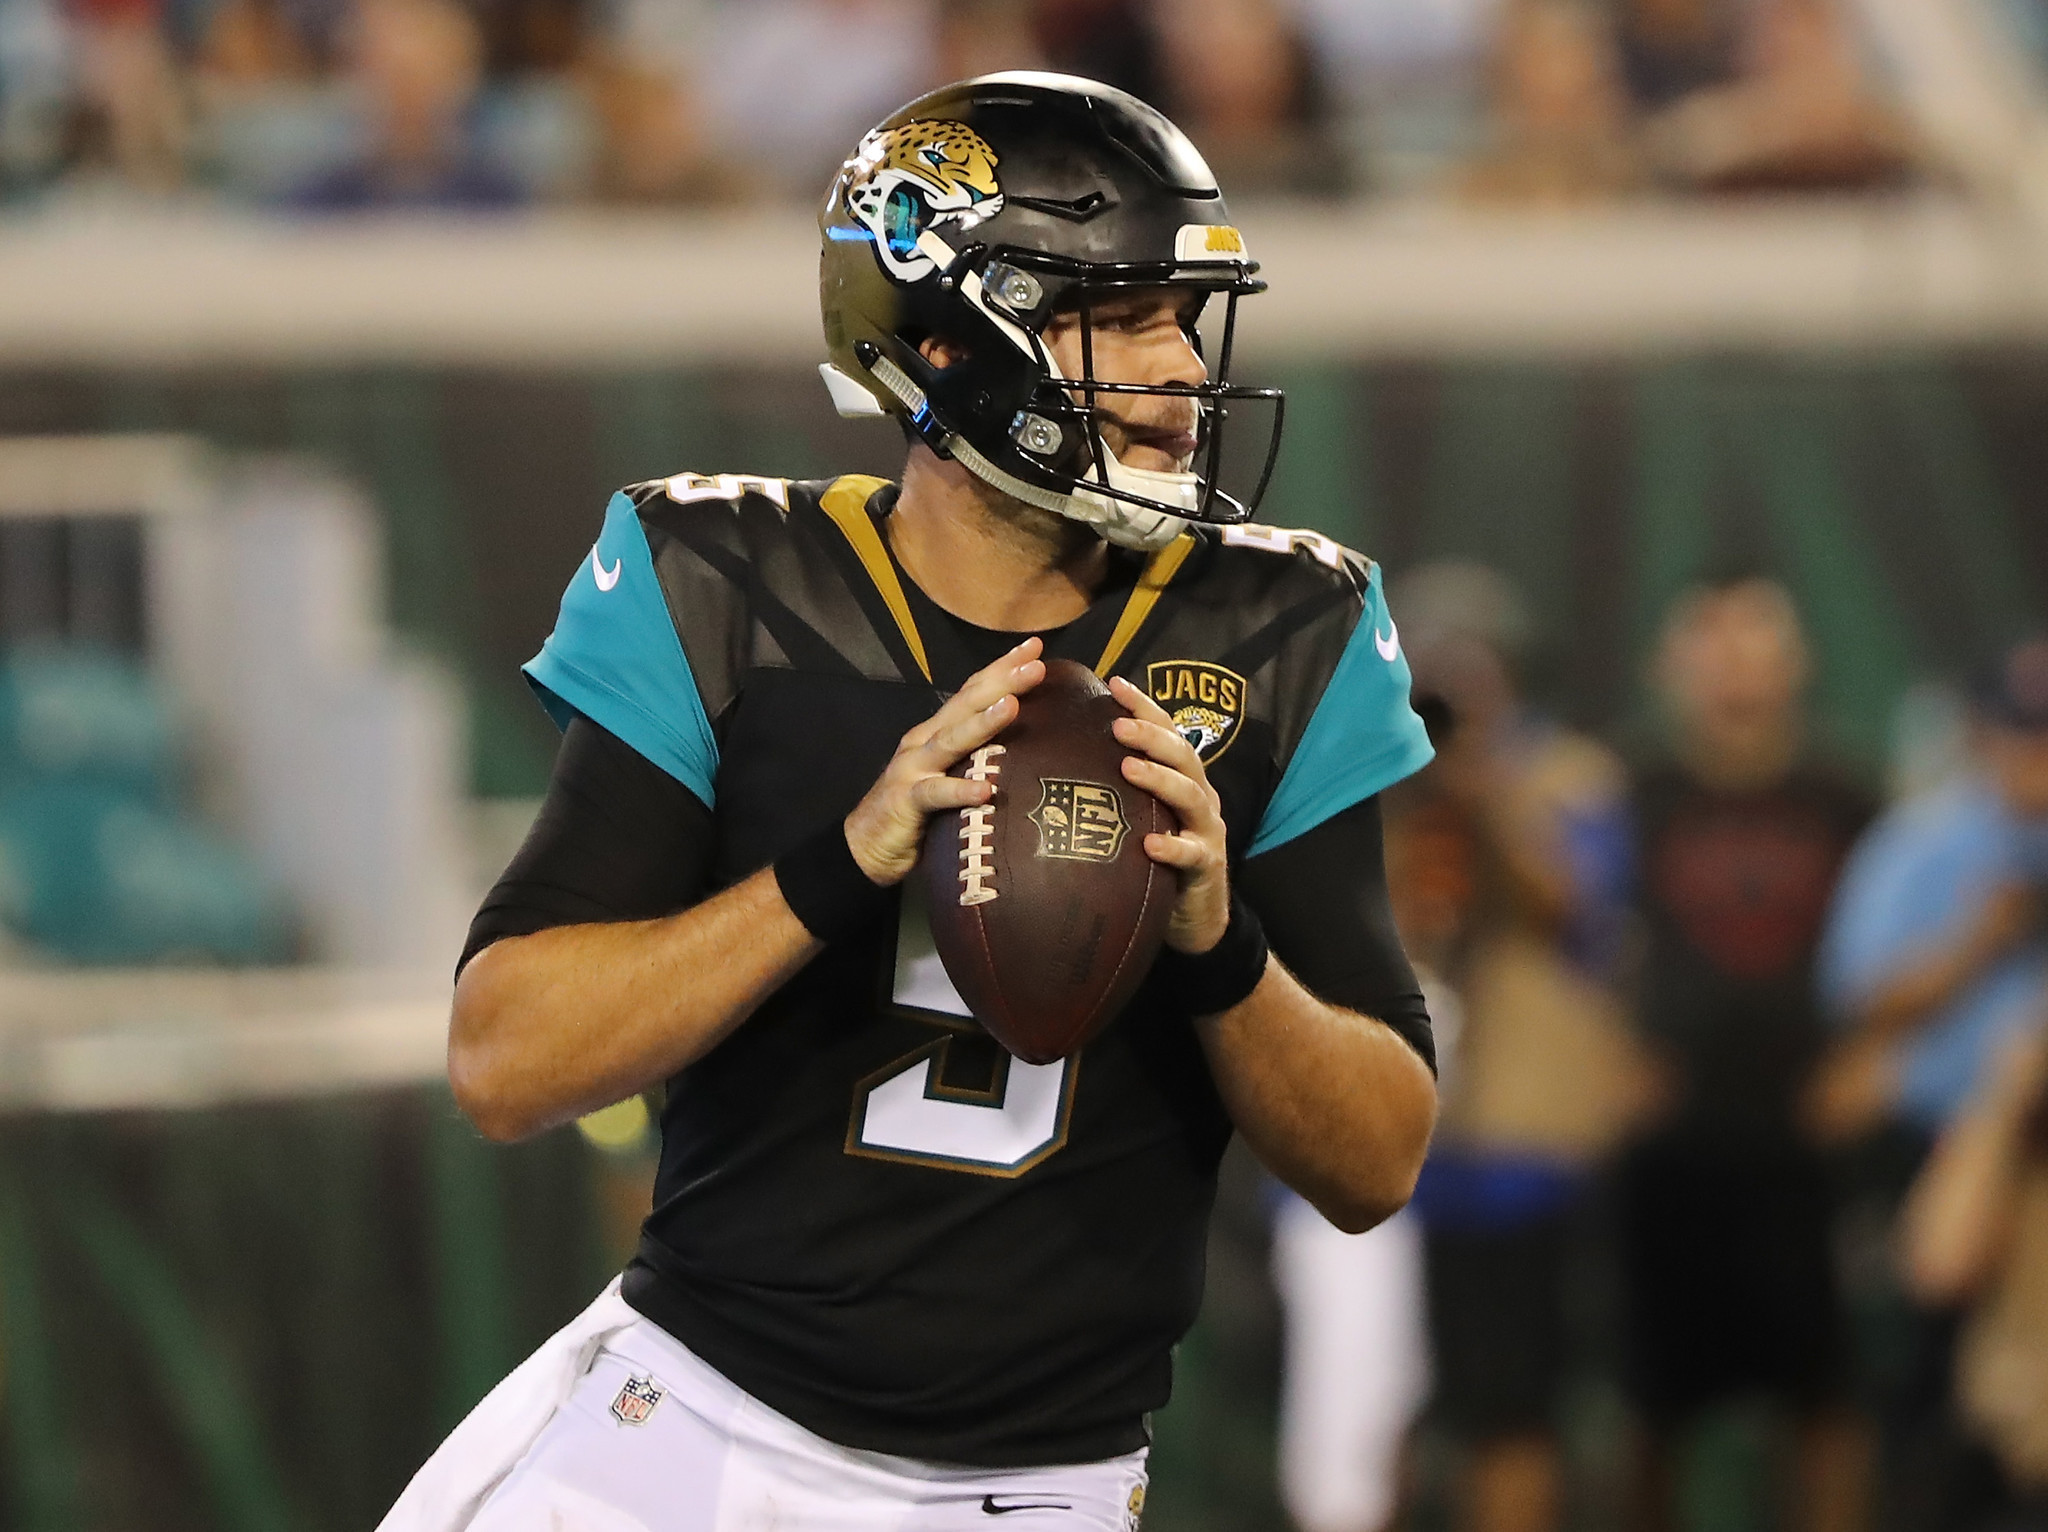 Blake Bortles benching could signal end of NFL career ...